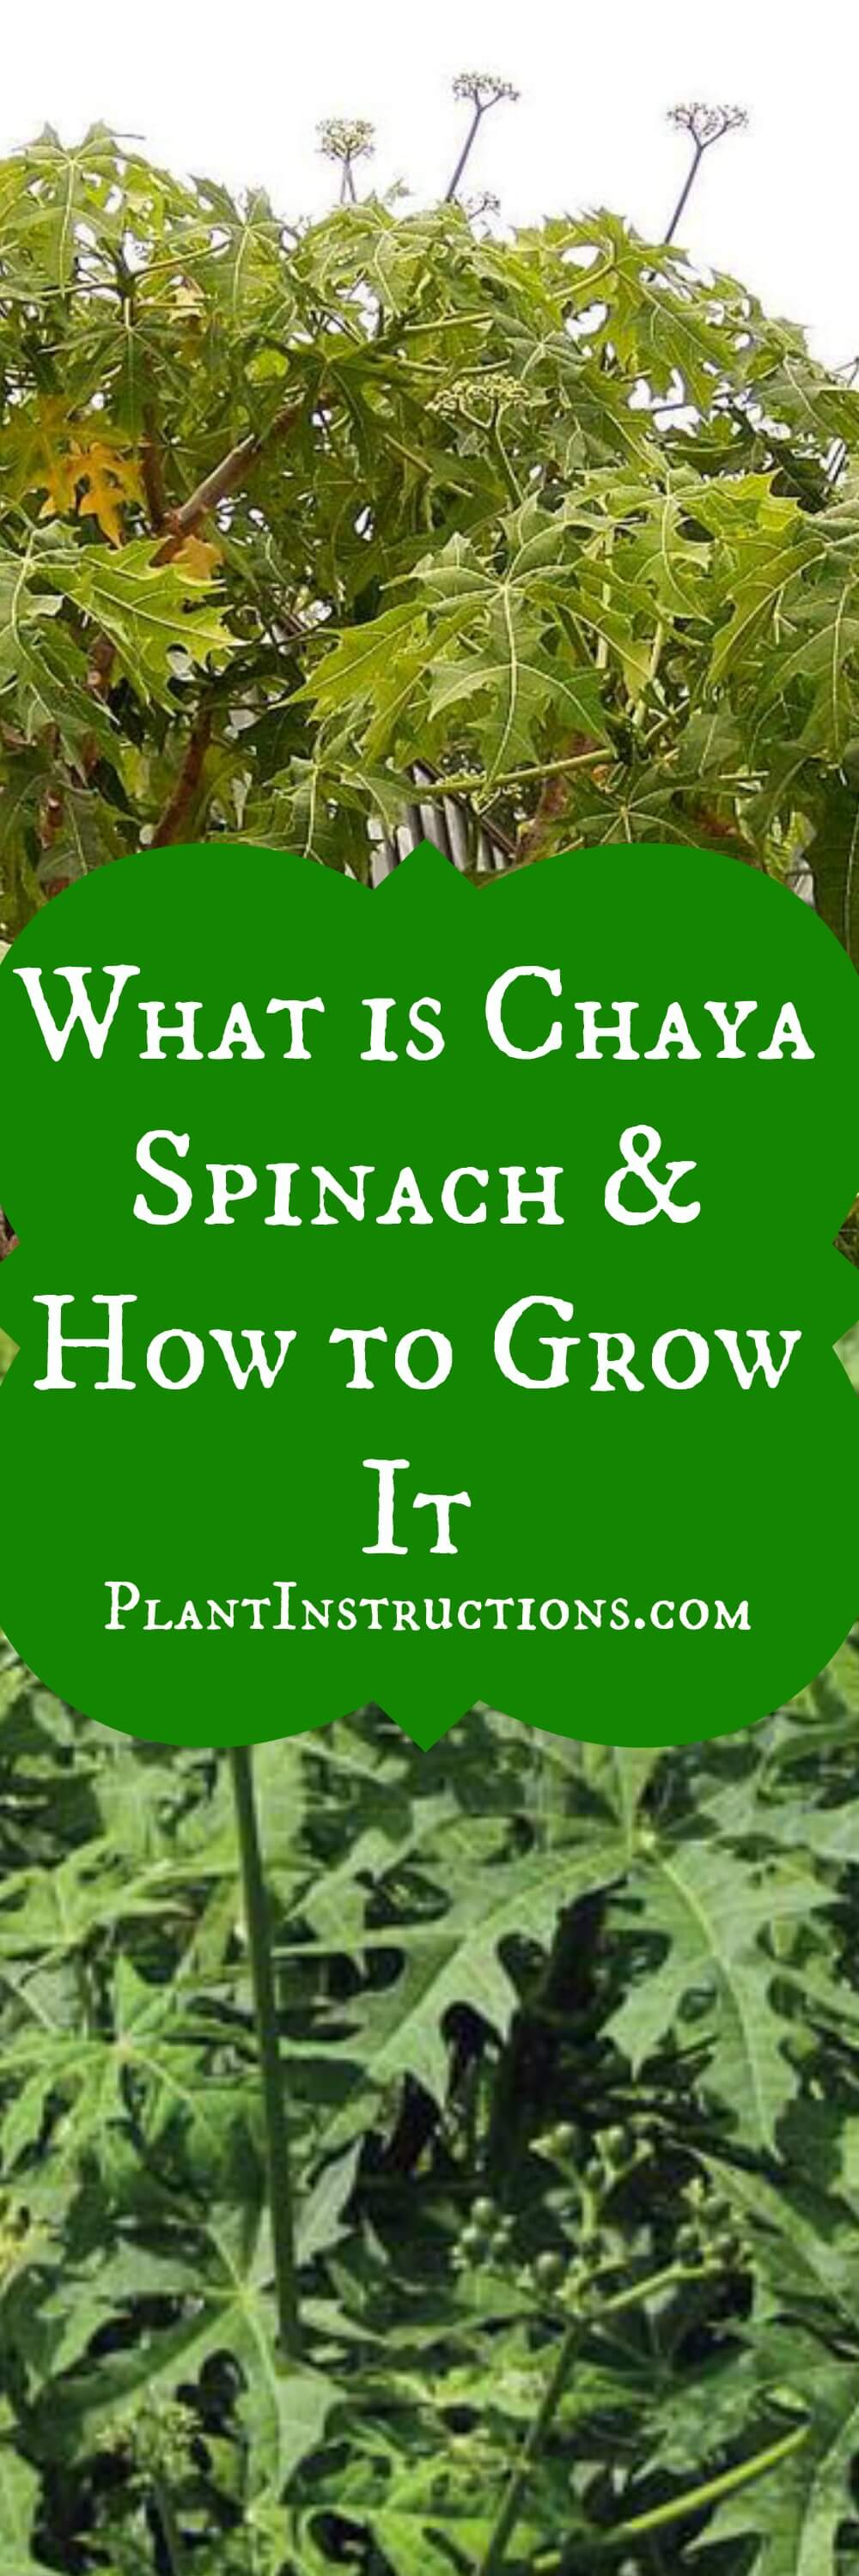 What is chaya plant and how do you grow it? A leafy green, the chaya plant, also kown as tree spinach, is very similar to leaf spinach!